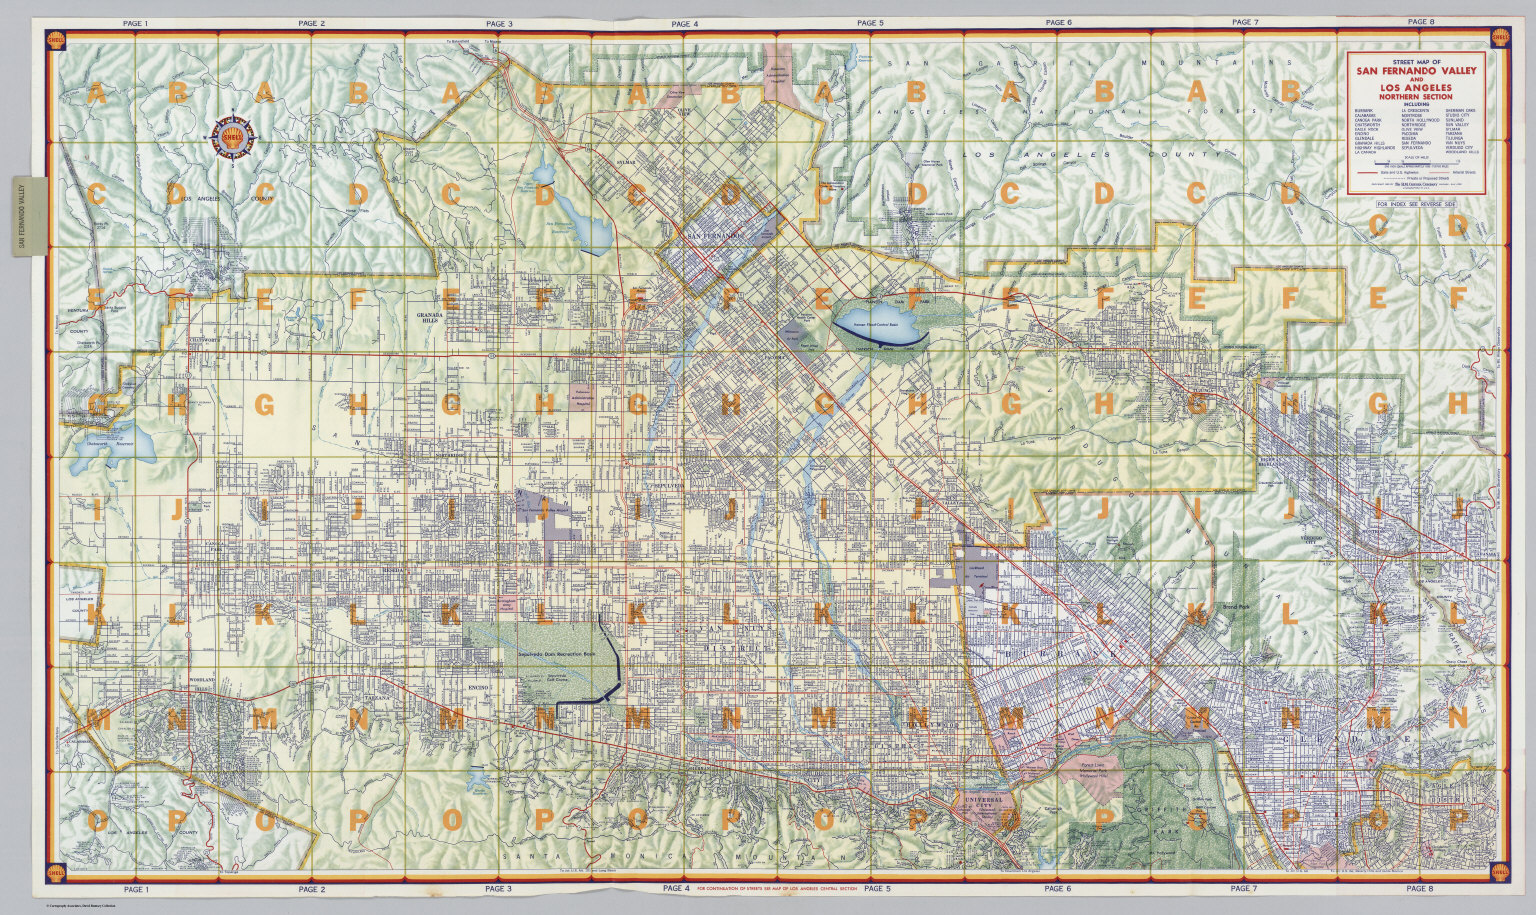 MacGyver Shooting Locations Hills Street Map Of Los Angeles - Los angeles map westwood